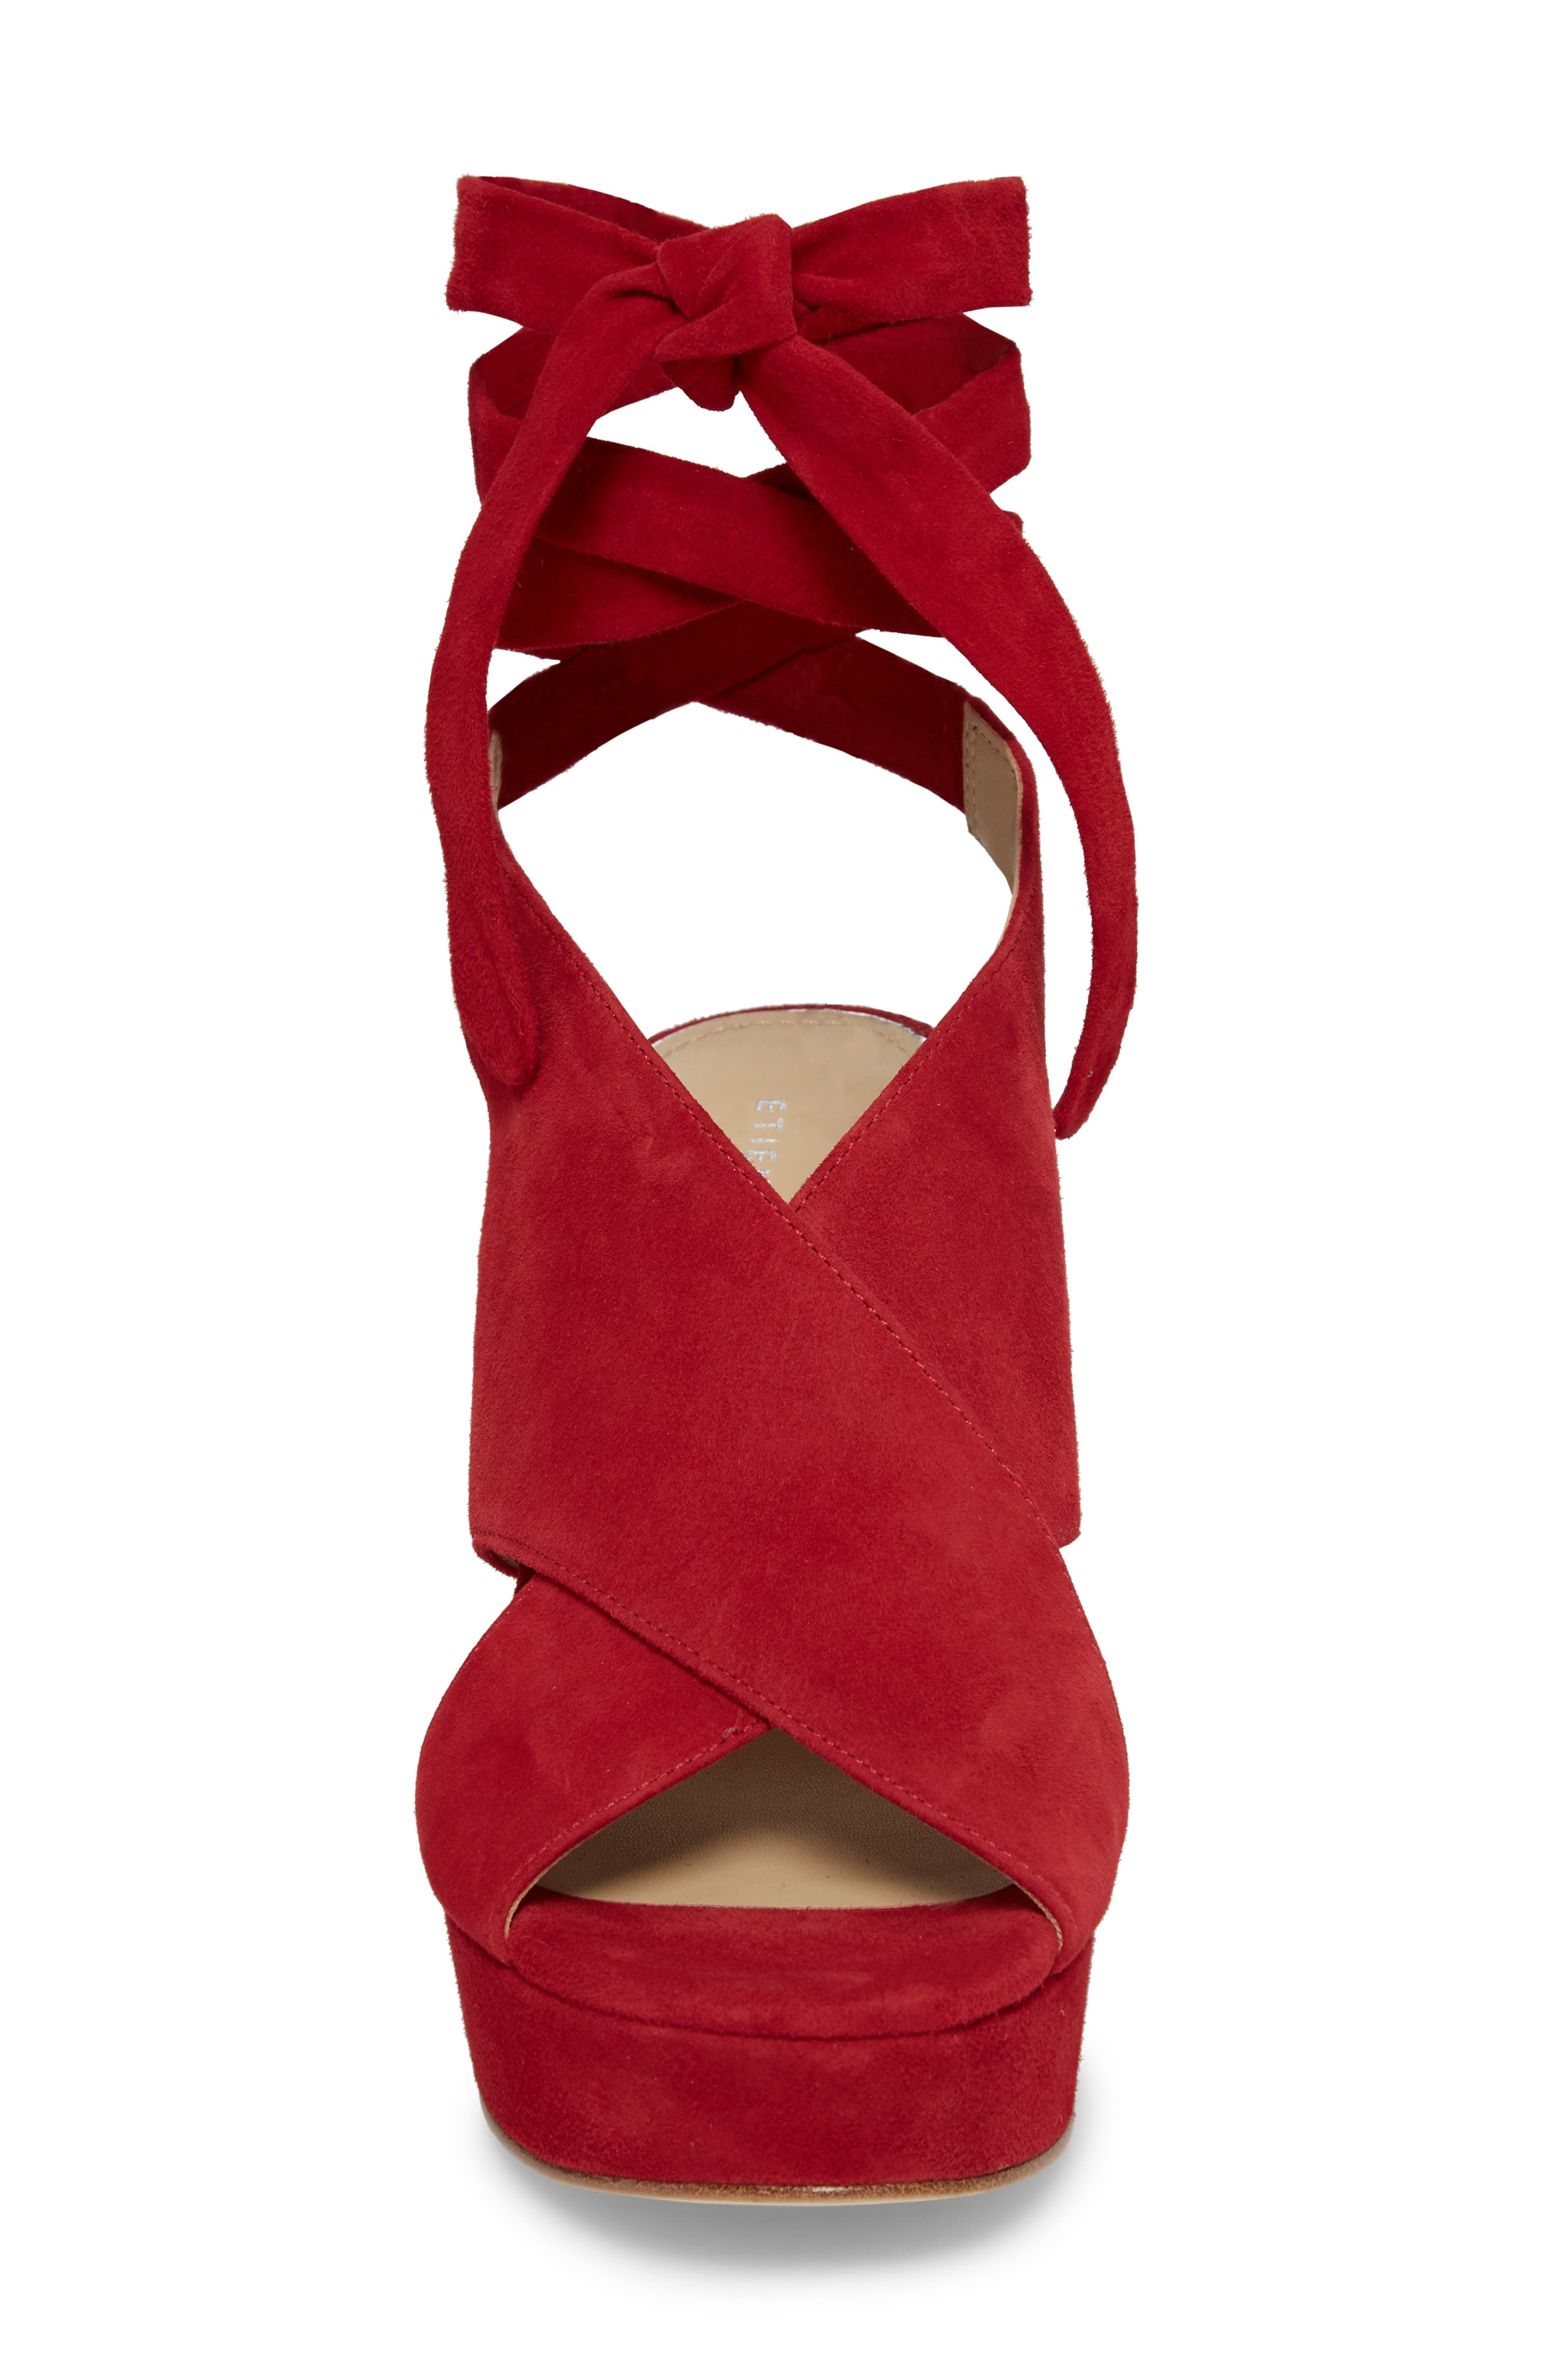 Dominica Platform Wedge Sandal,                             Alternate thumbnail 4, color,                             Cherry Suede